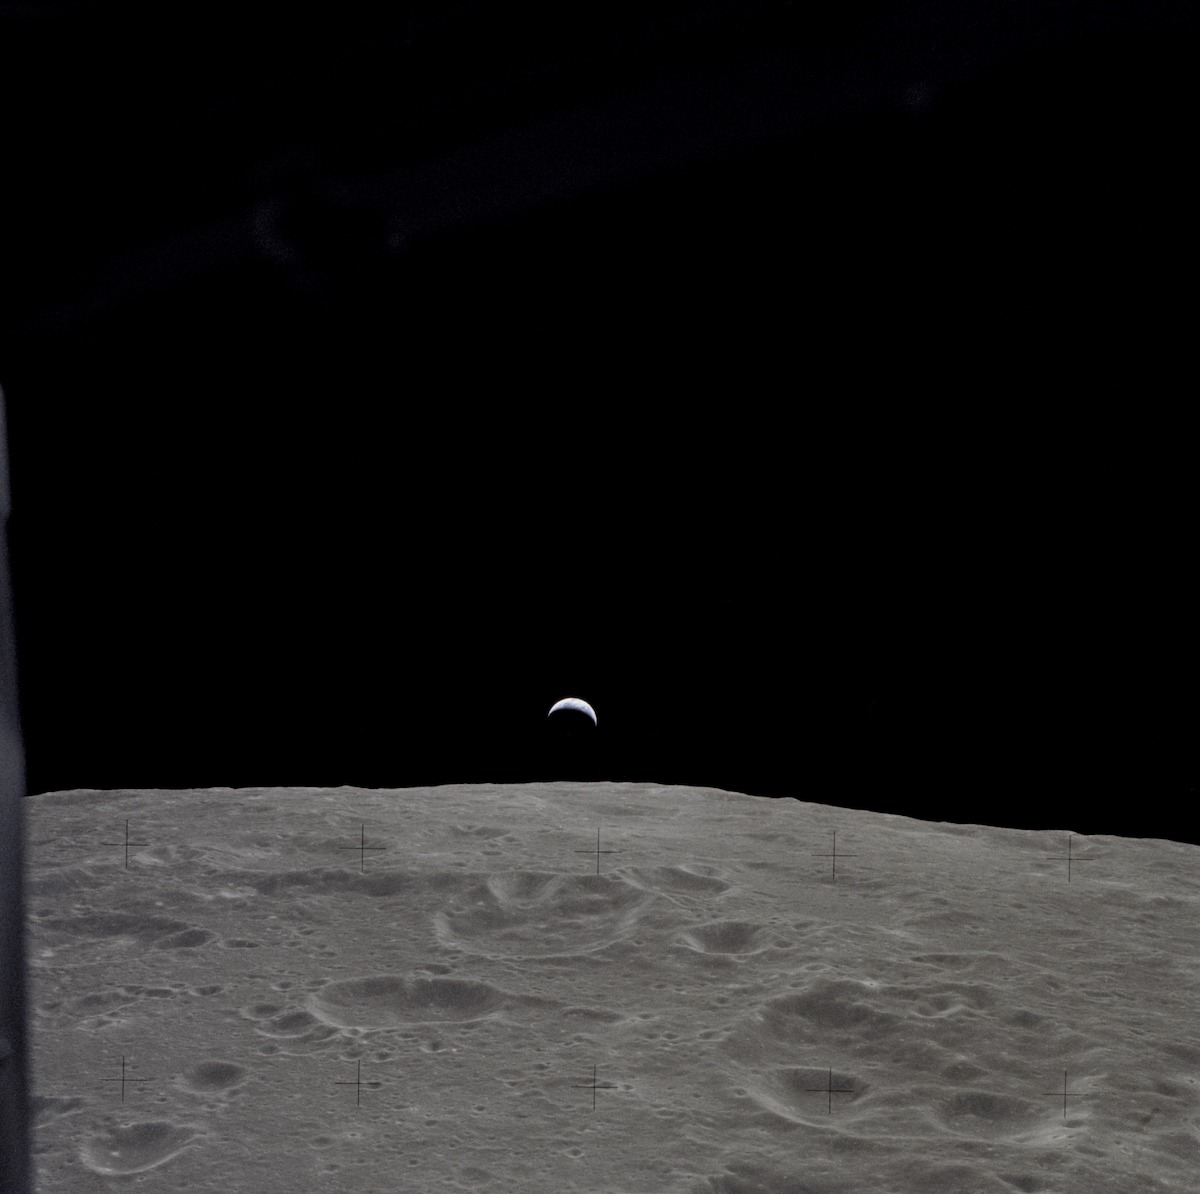 crescent Earth seen in the far distance over the lunar horizon